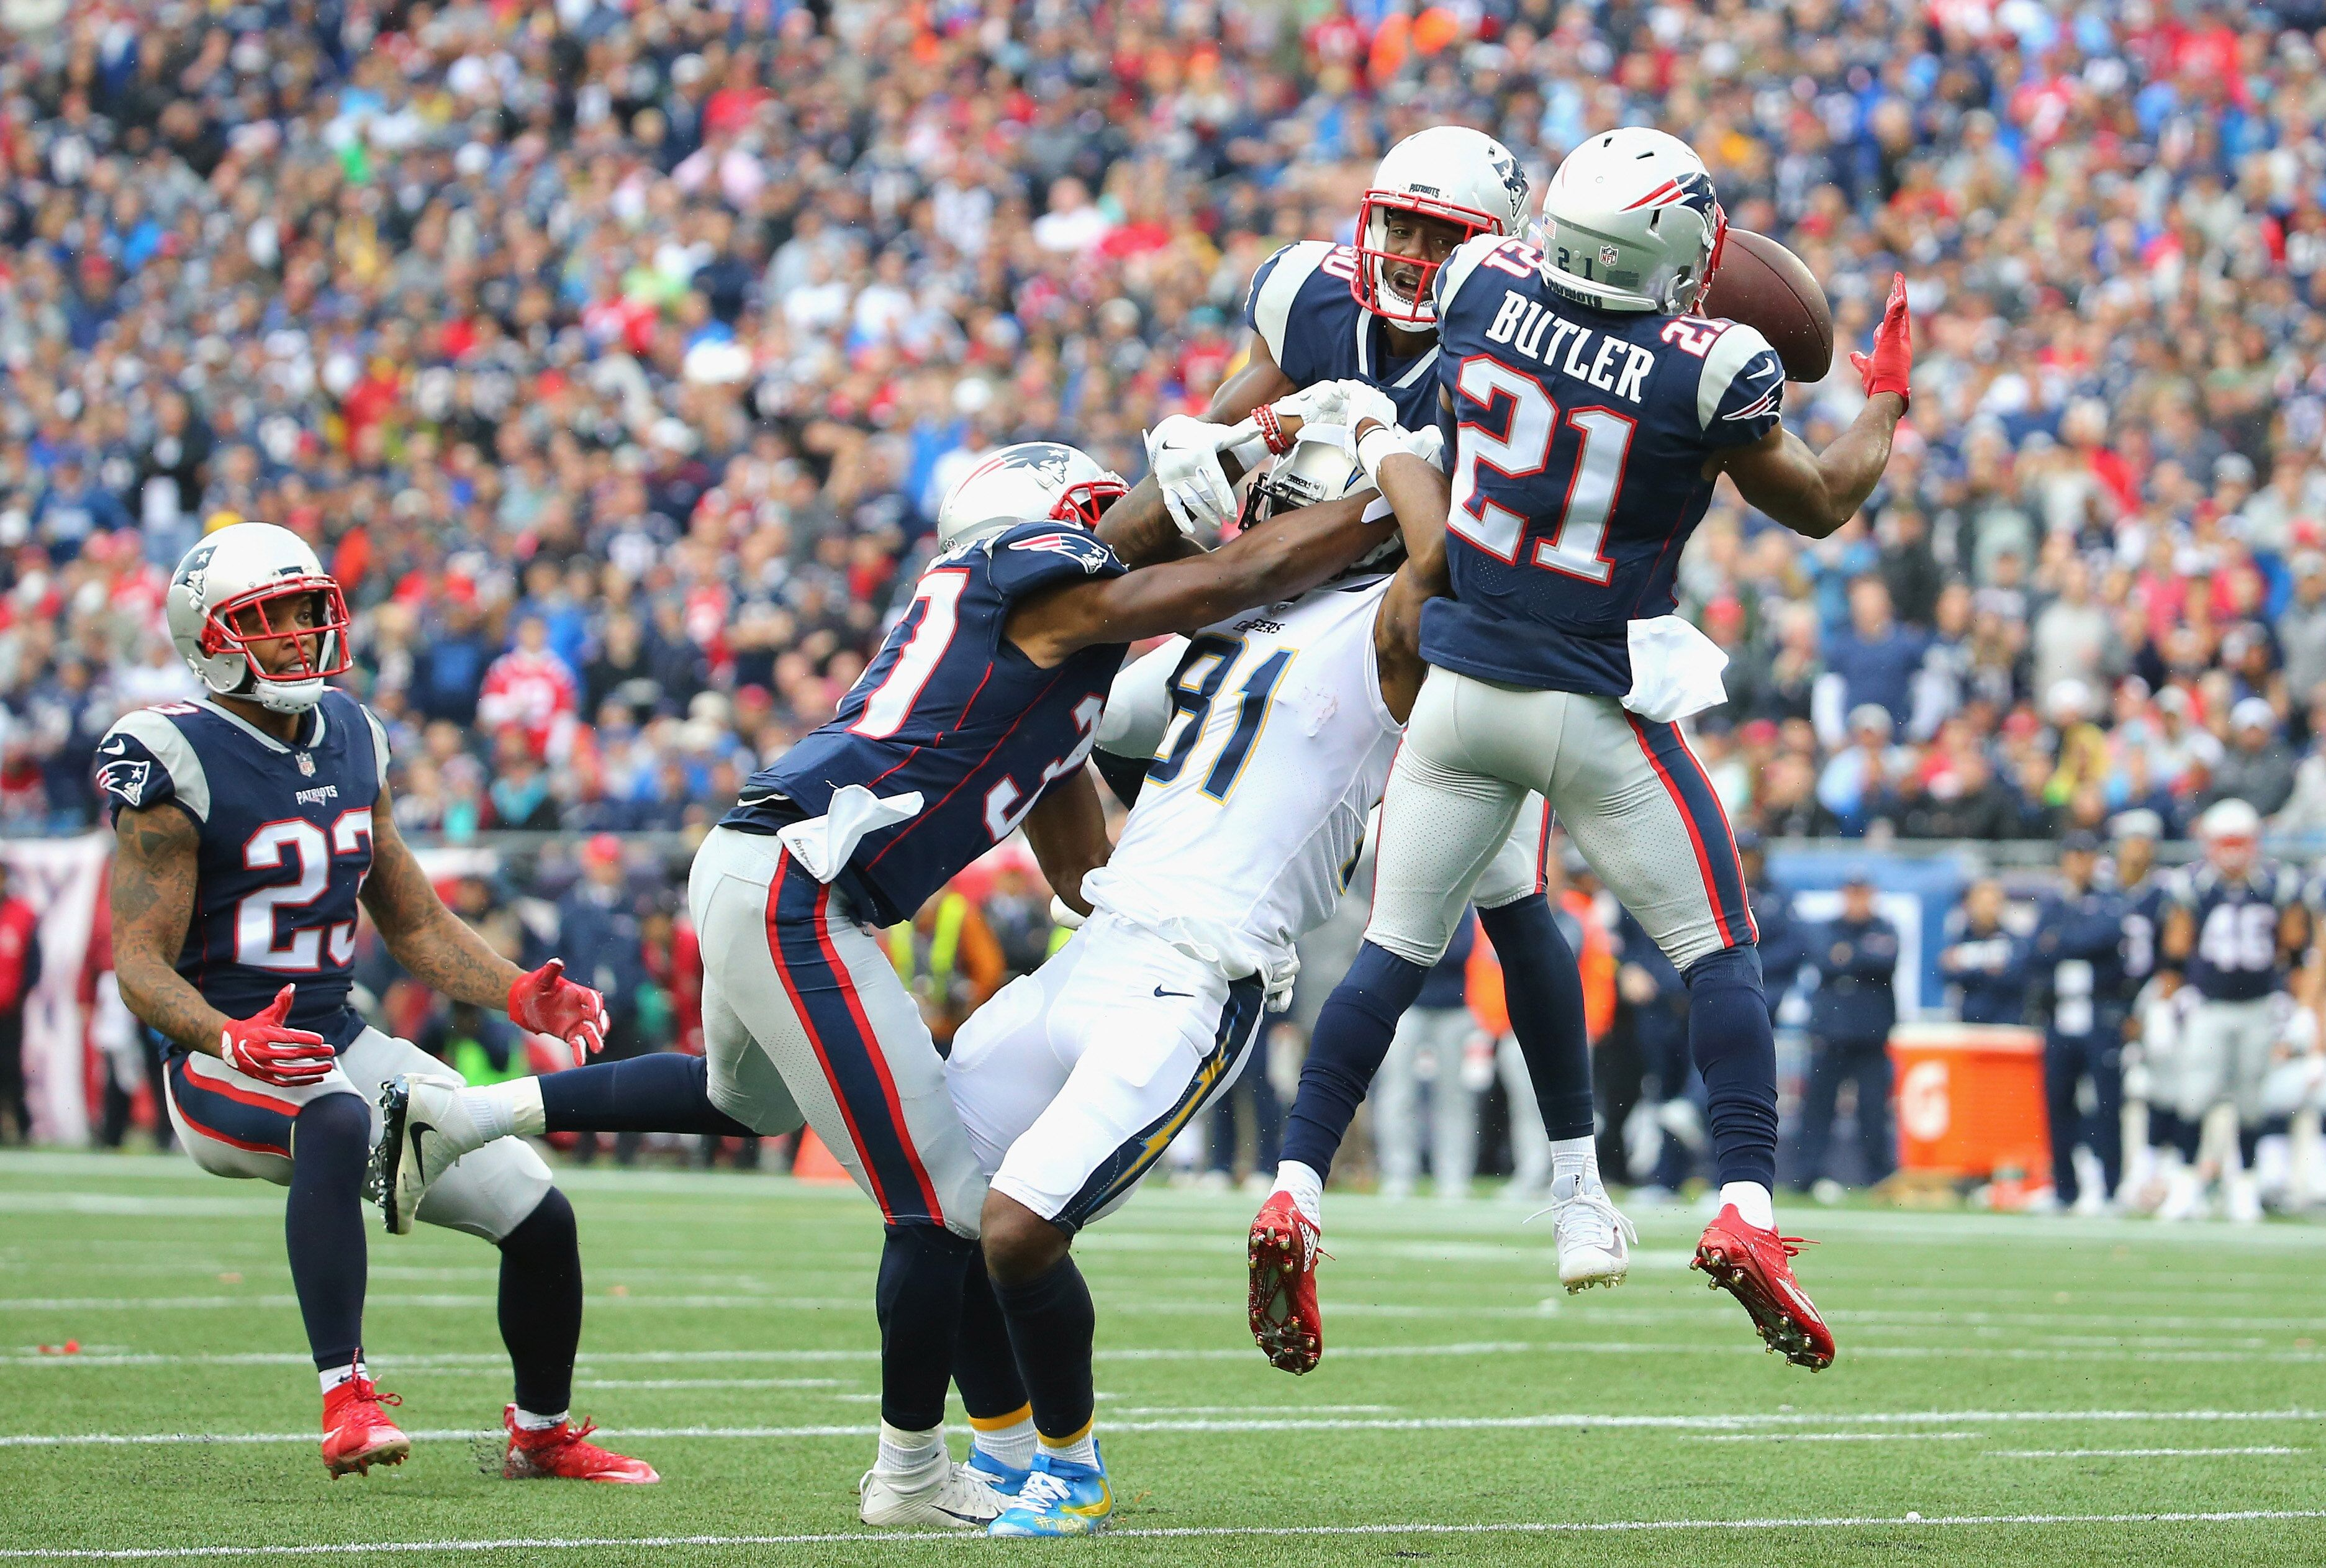 New England Patriots defense a much improved unit